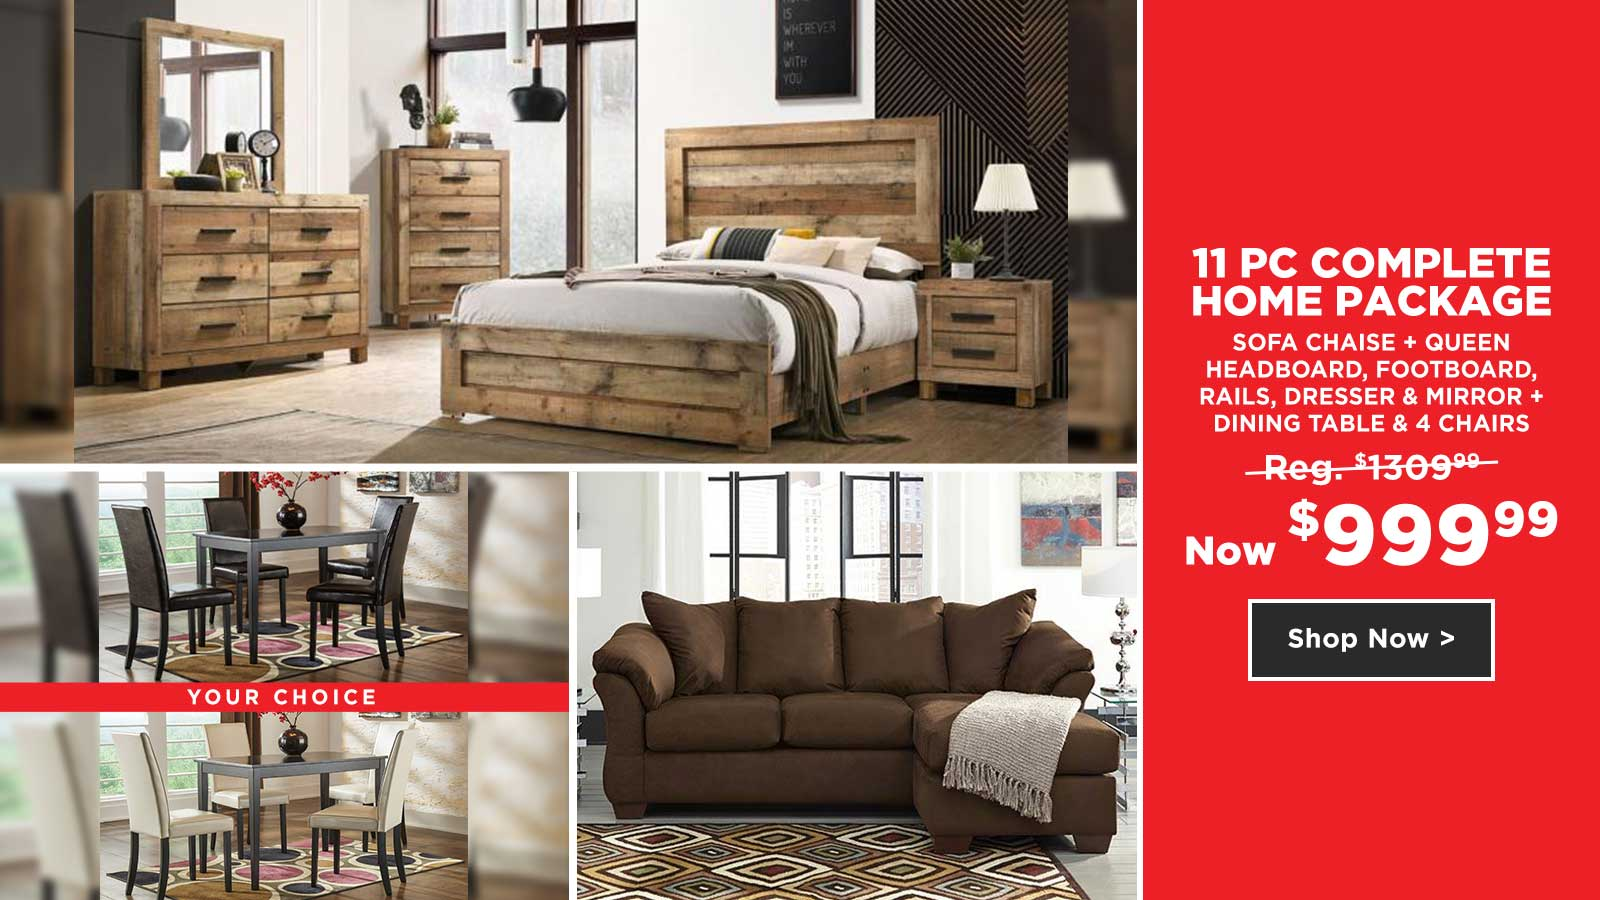 11 Pc Complete Home Package $999.99